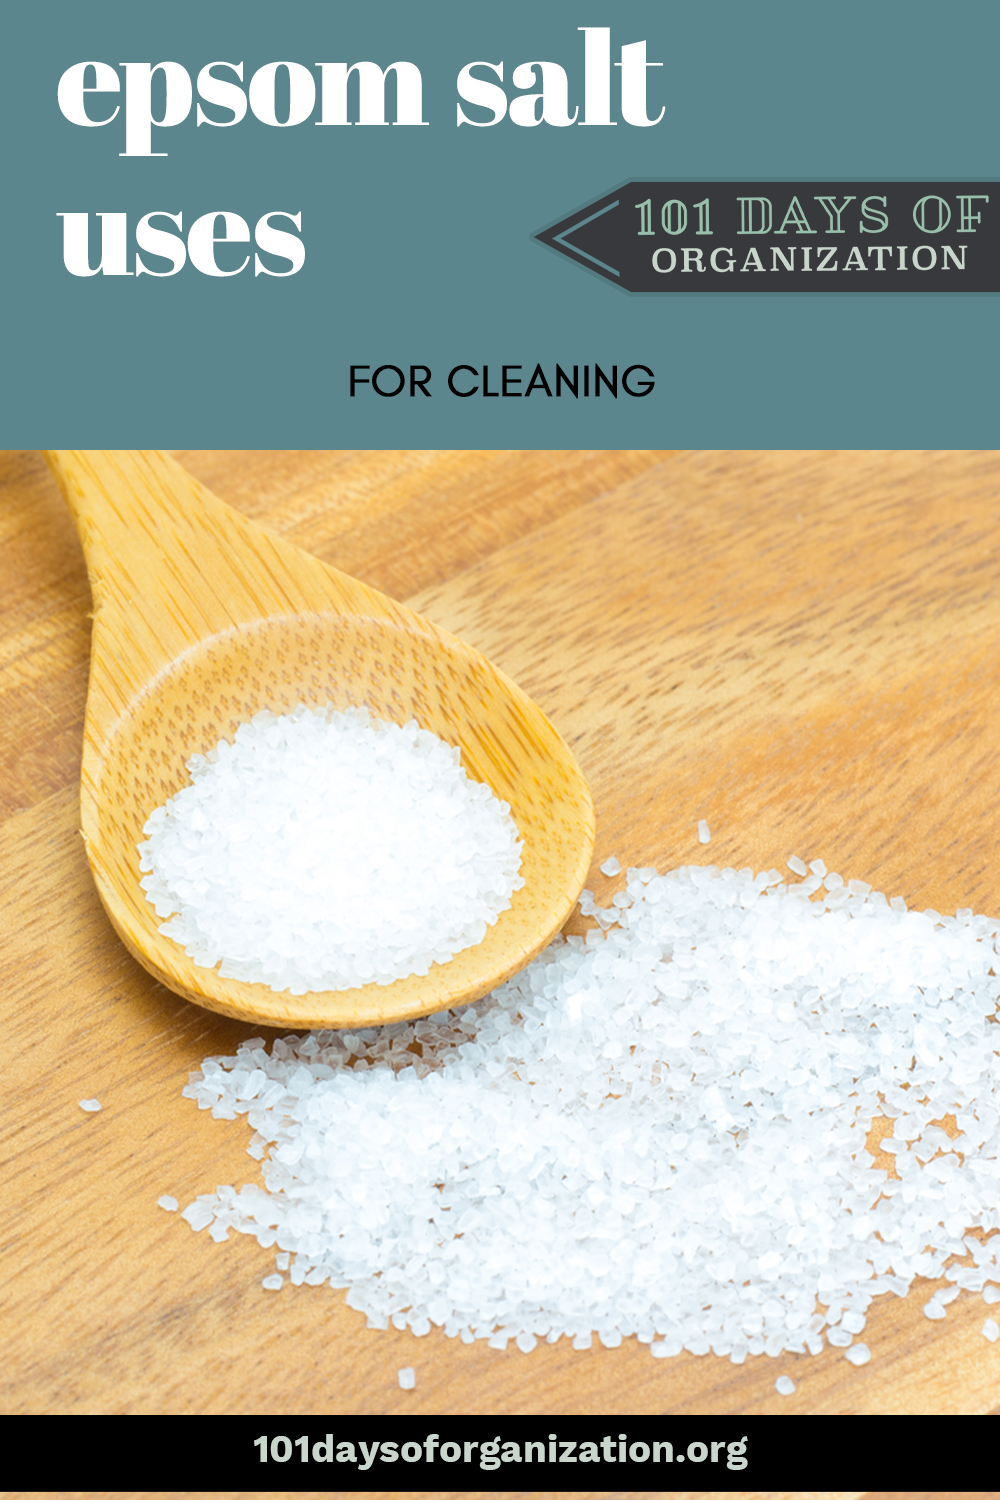 4 Surprising Epsom salt uses for cleaning stuff around the house--even stuff you thought might never come clean again! Learn how to put the power of Epsom salt to work for you. #101daysoforganizationblog #epsomsaltuses #cleaningwithepsomsalt